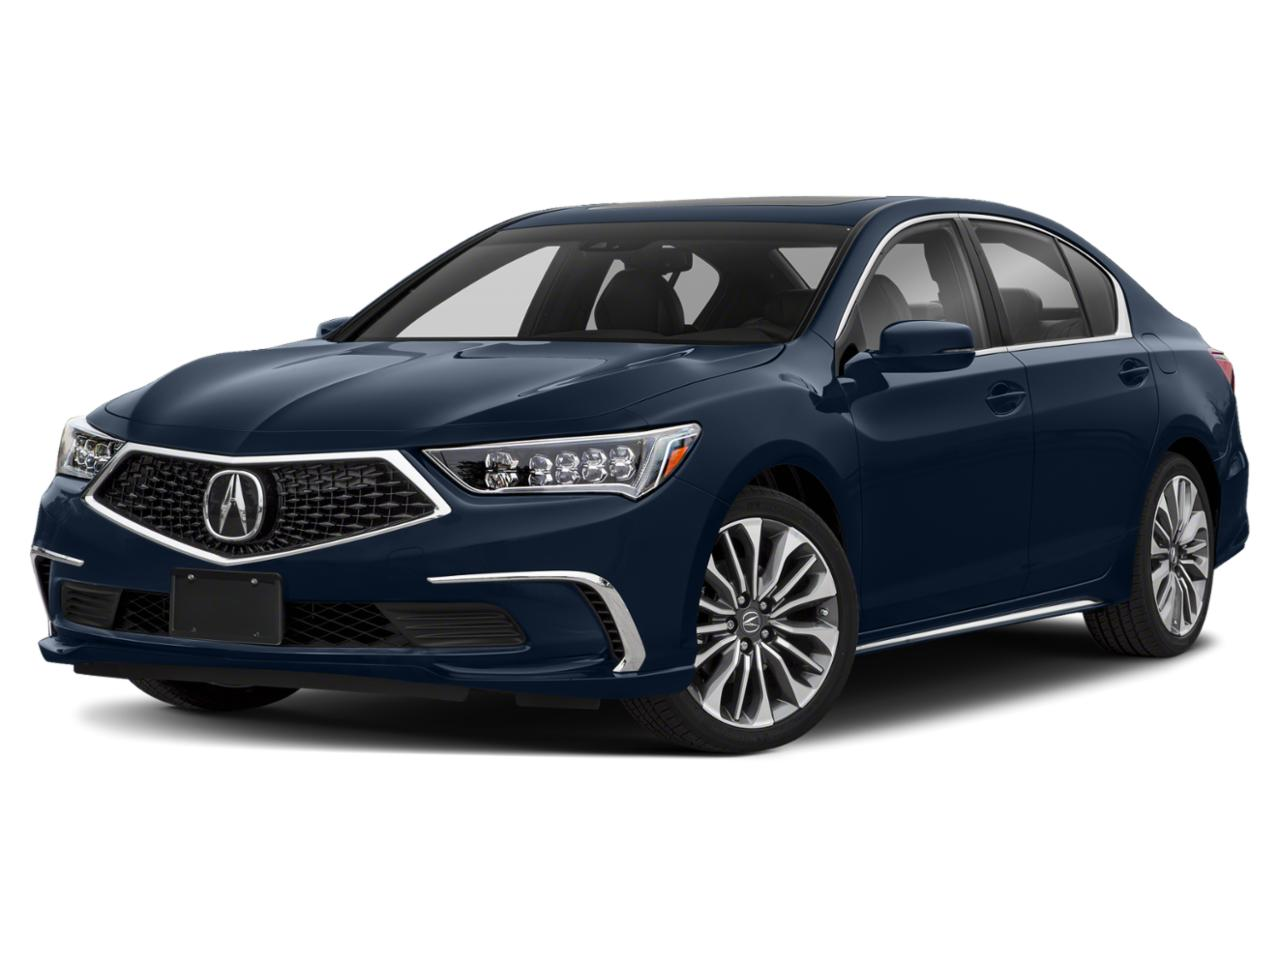 2020 Acura RLX Vehicle Photo in BEND, OR 97701-5133